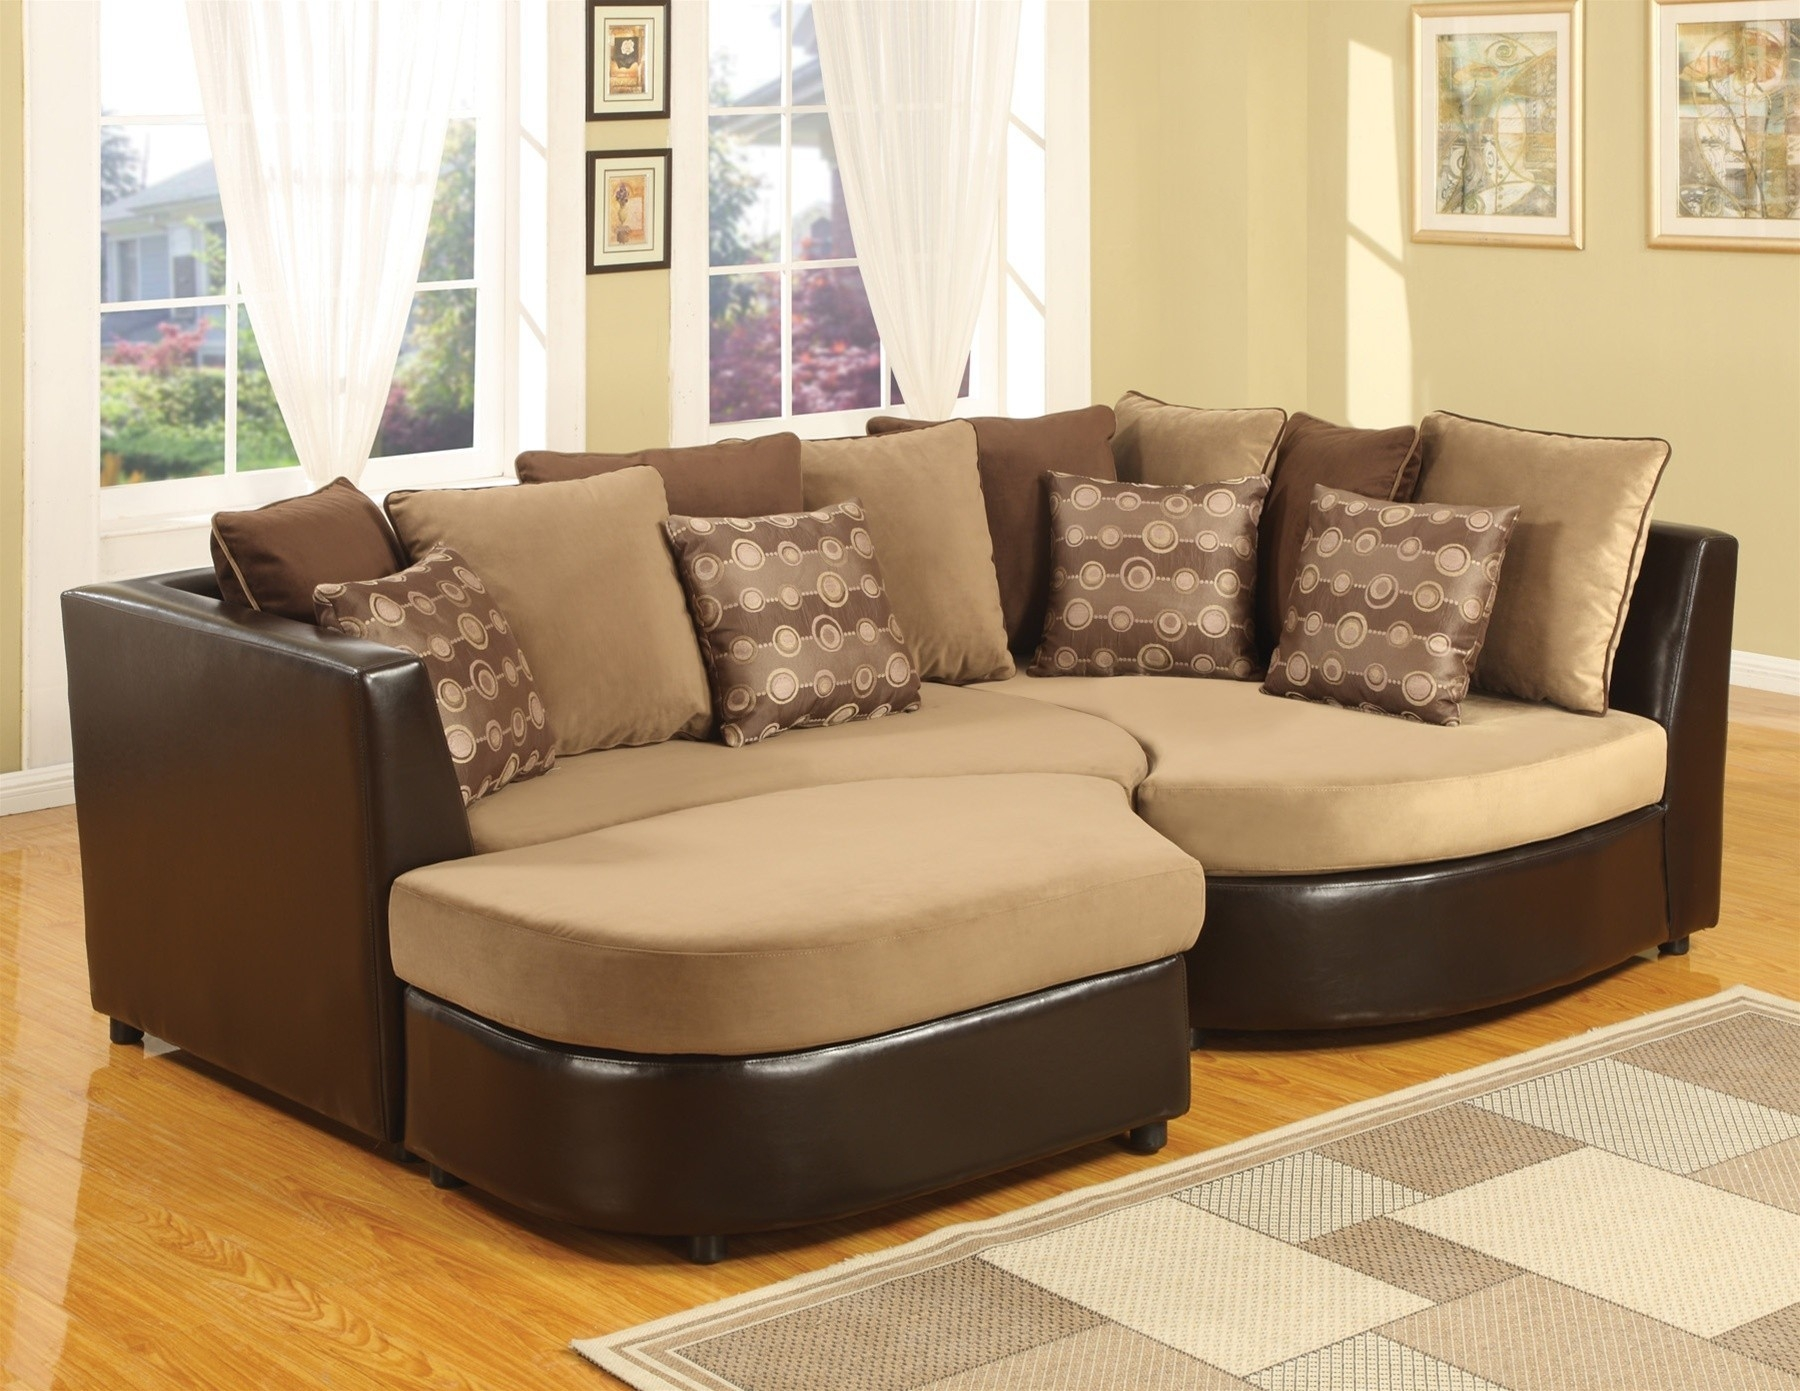 wide sofas semi circle sofa uk 12 best collection of extra sectional